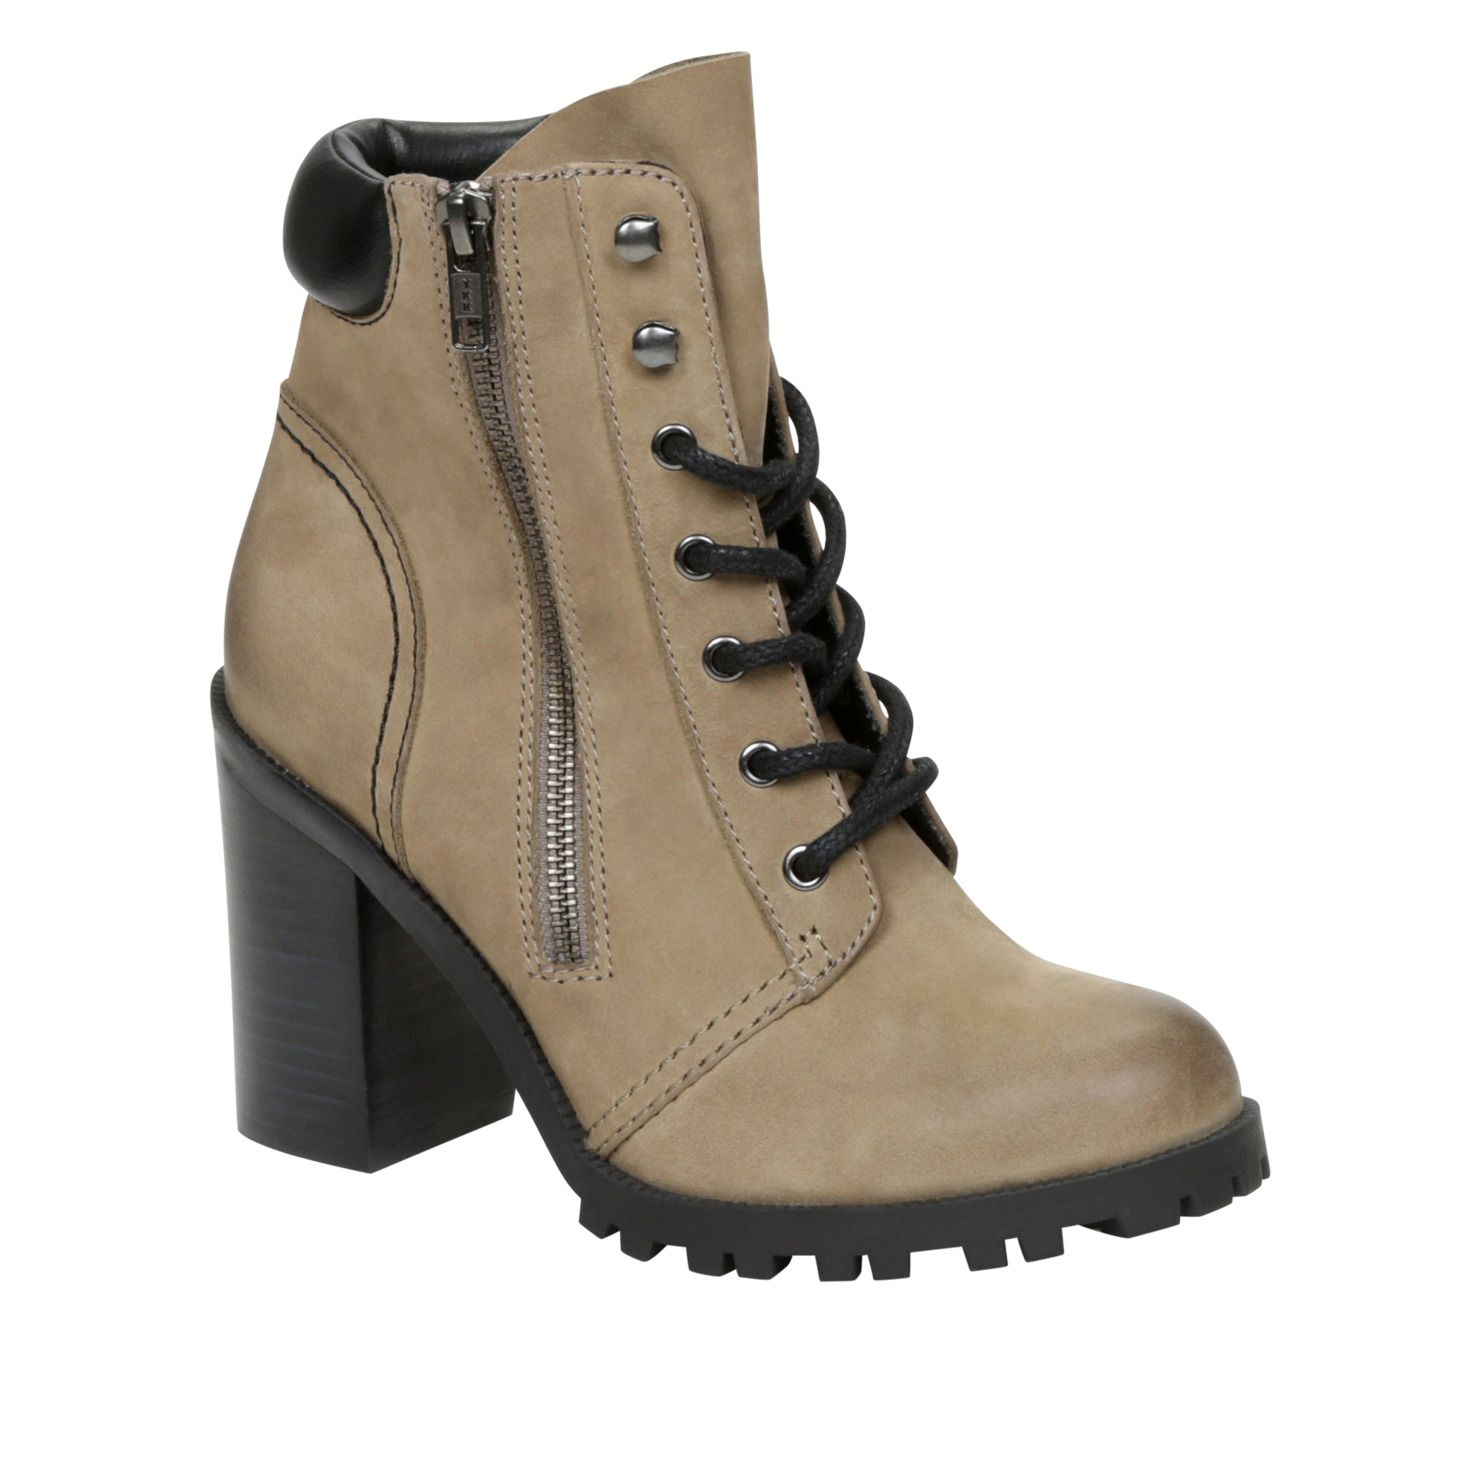 TRUSA - women's ankle boots boots for sale at ALDO Shoes.